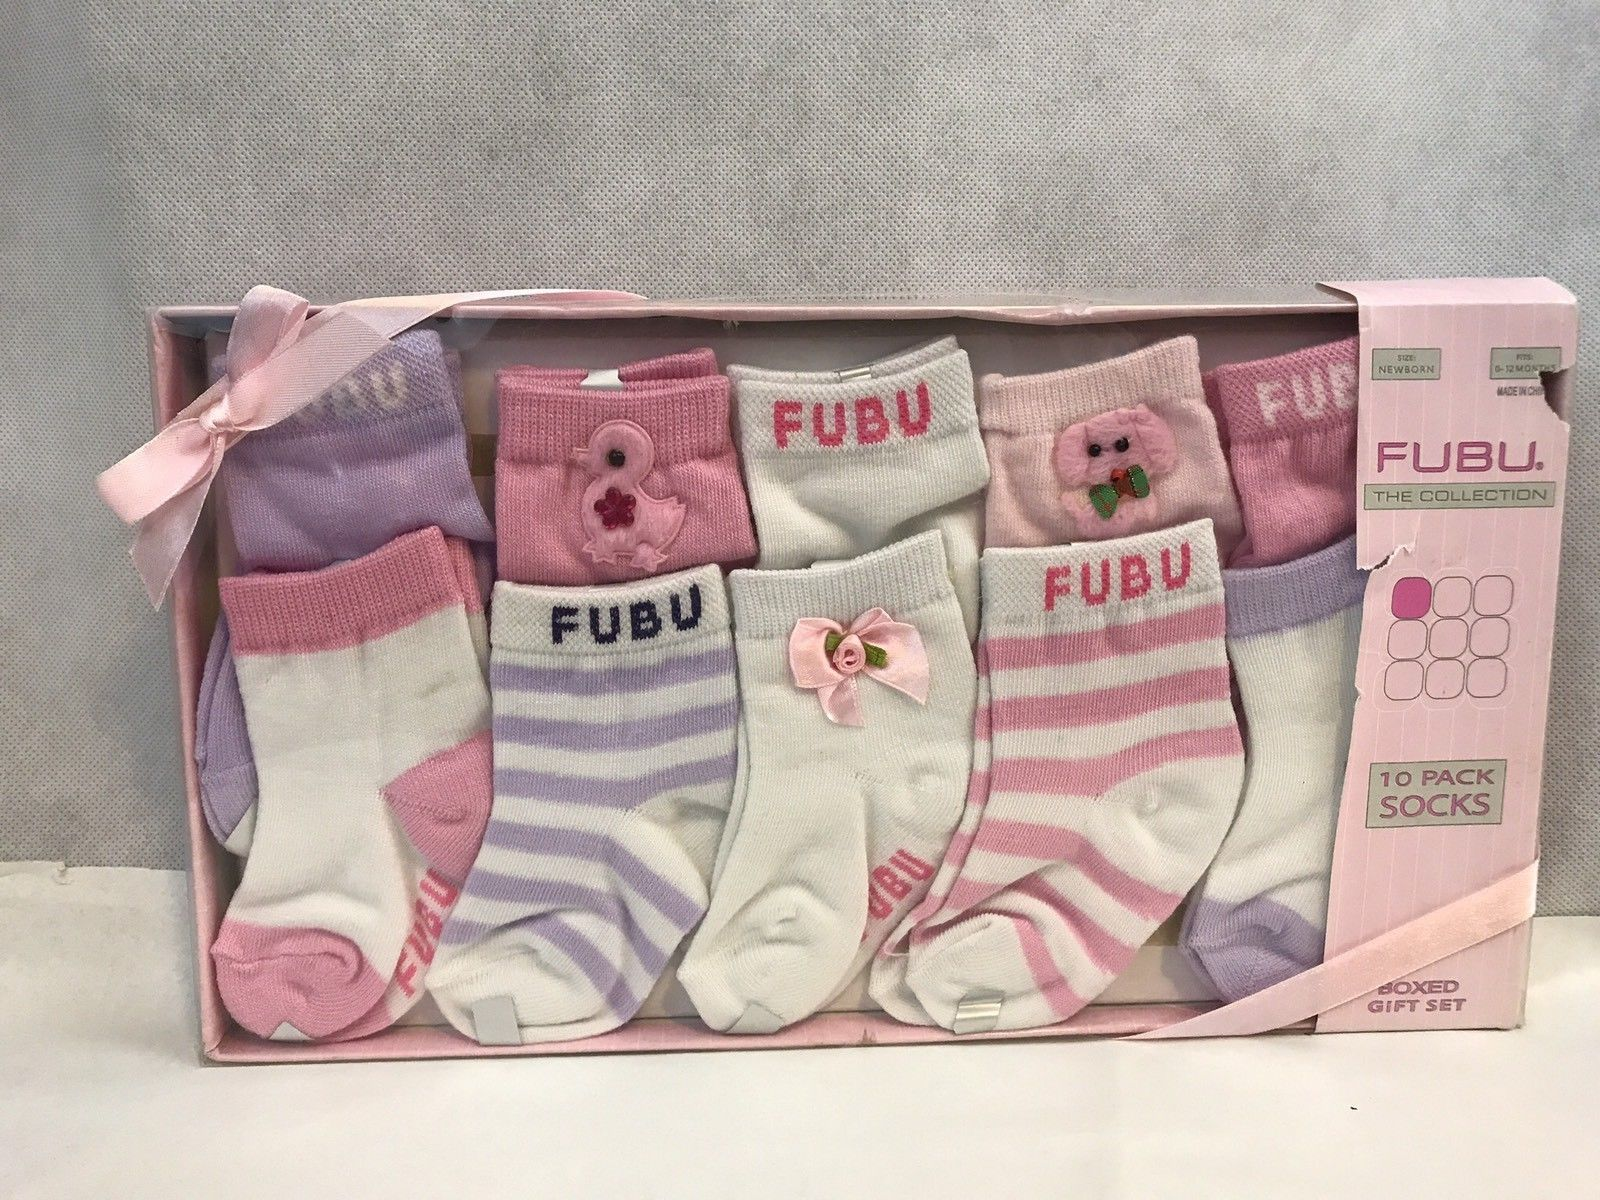 Fubu The Collection 10 Pack Socks Boxed Gift Set Pink Infants Socks Clothing Shoes Accessories Baby Toddler Clothing Girls Baby Socks Gift Set Infant